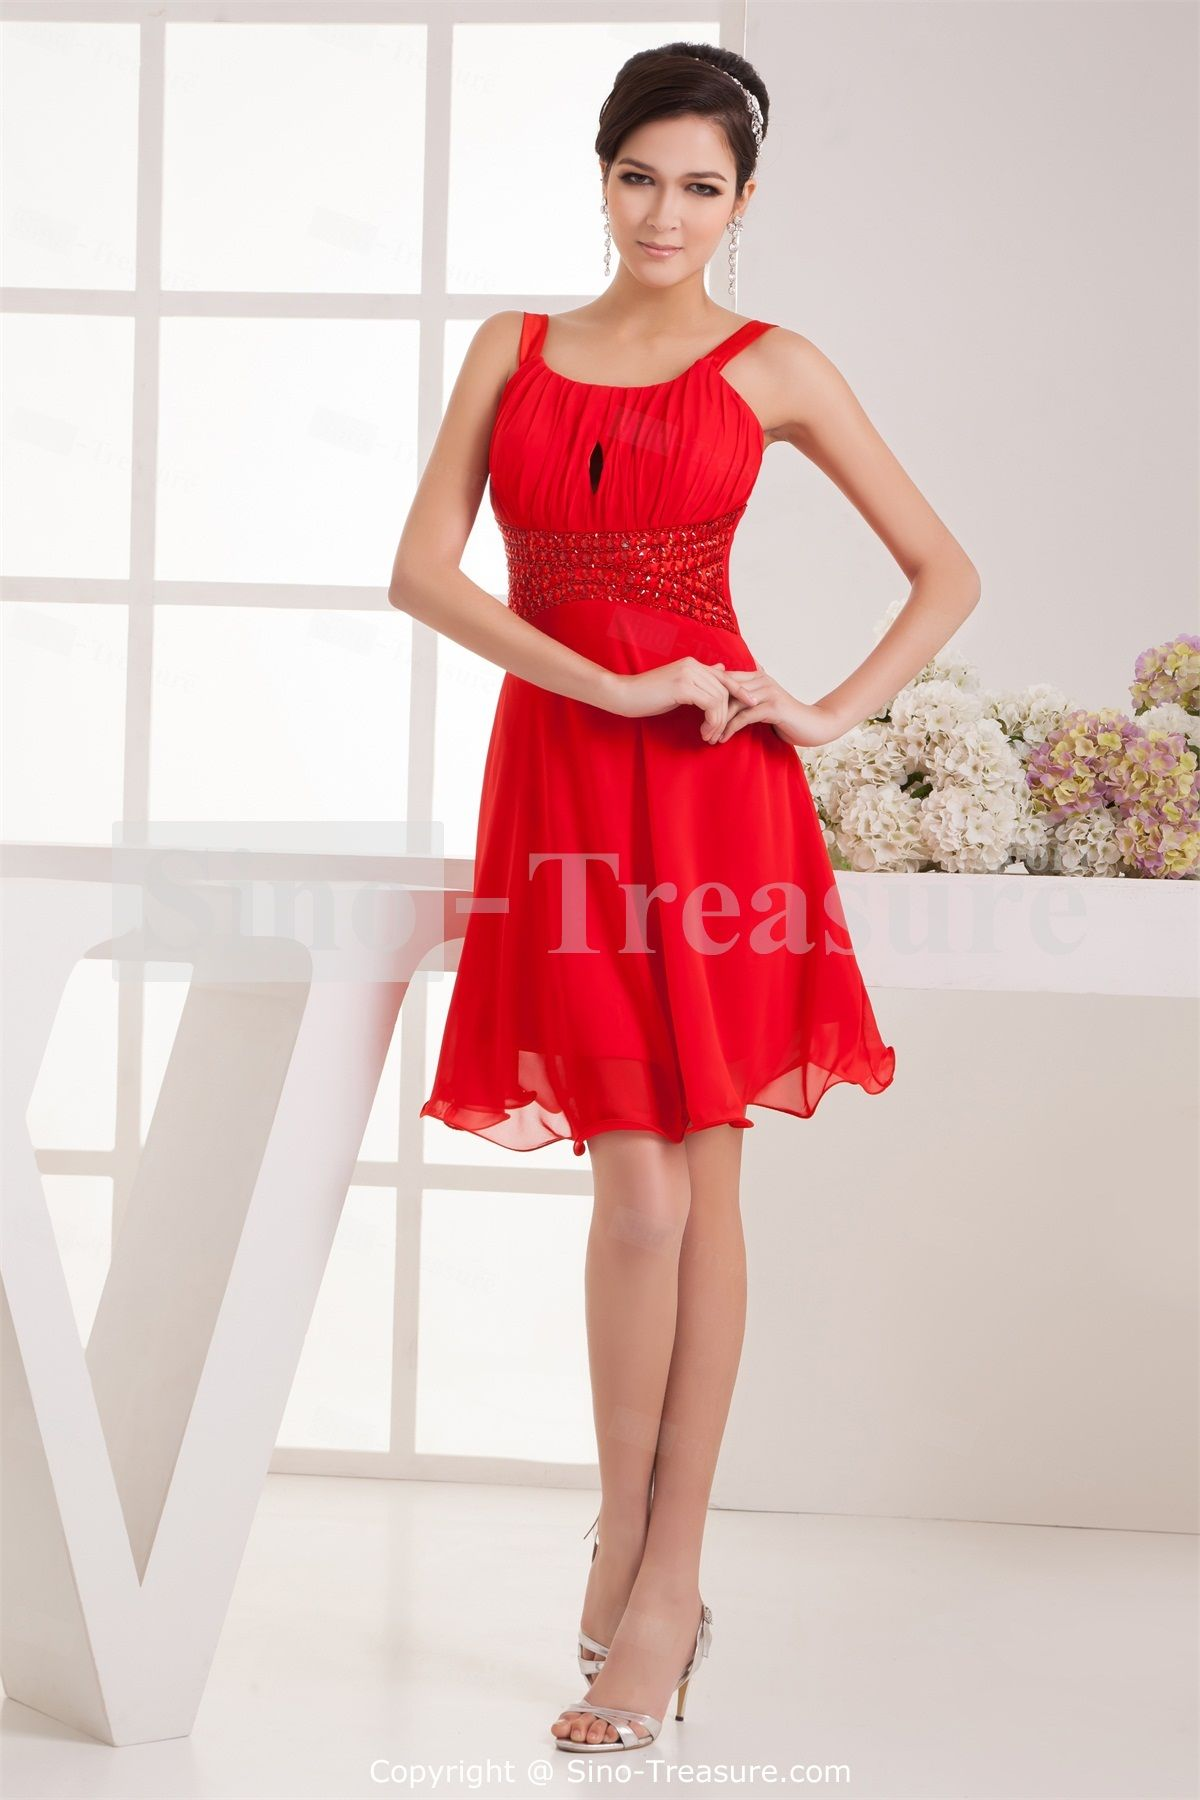 red dresses for women | Red Short Chiffon Elastic Woven Satin ...